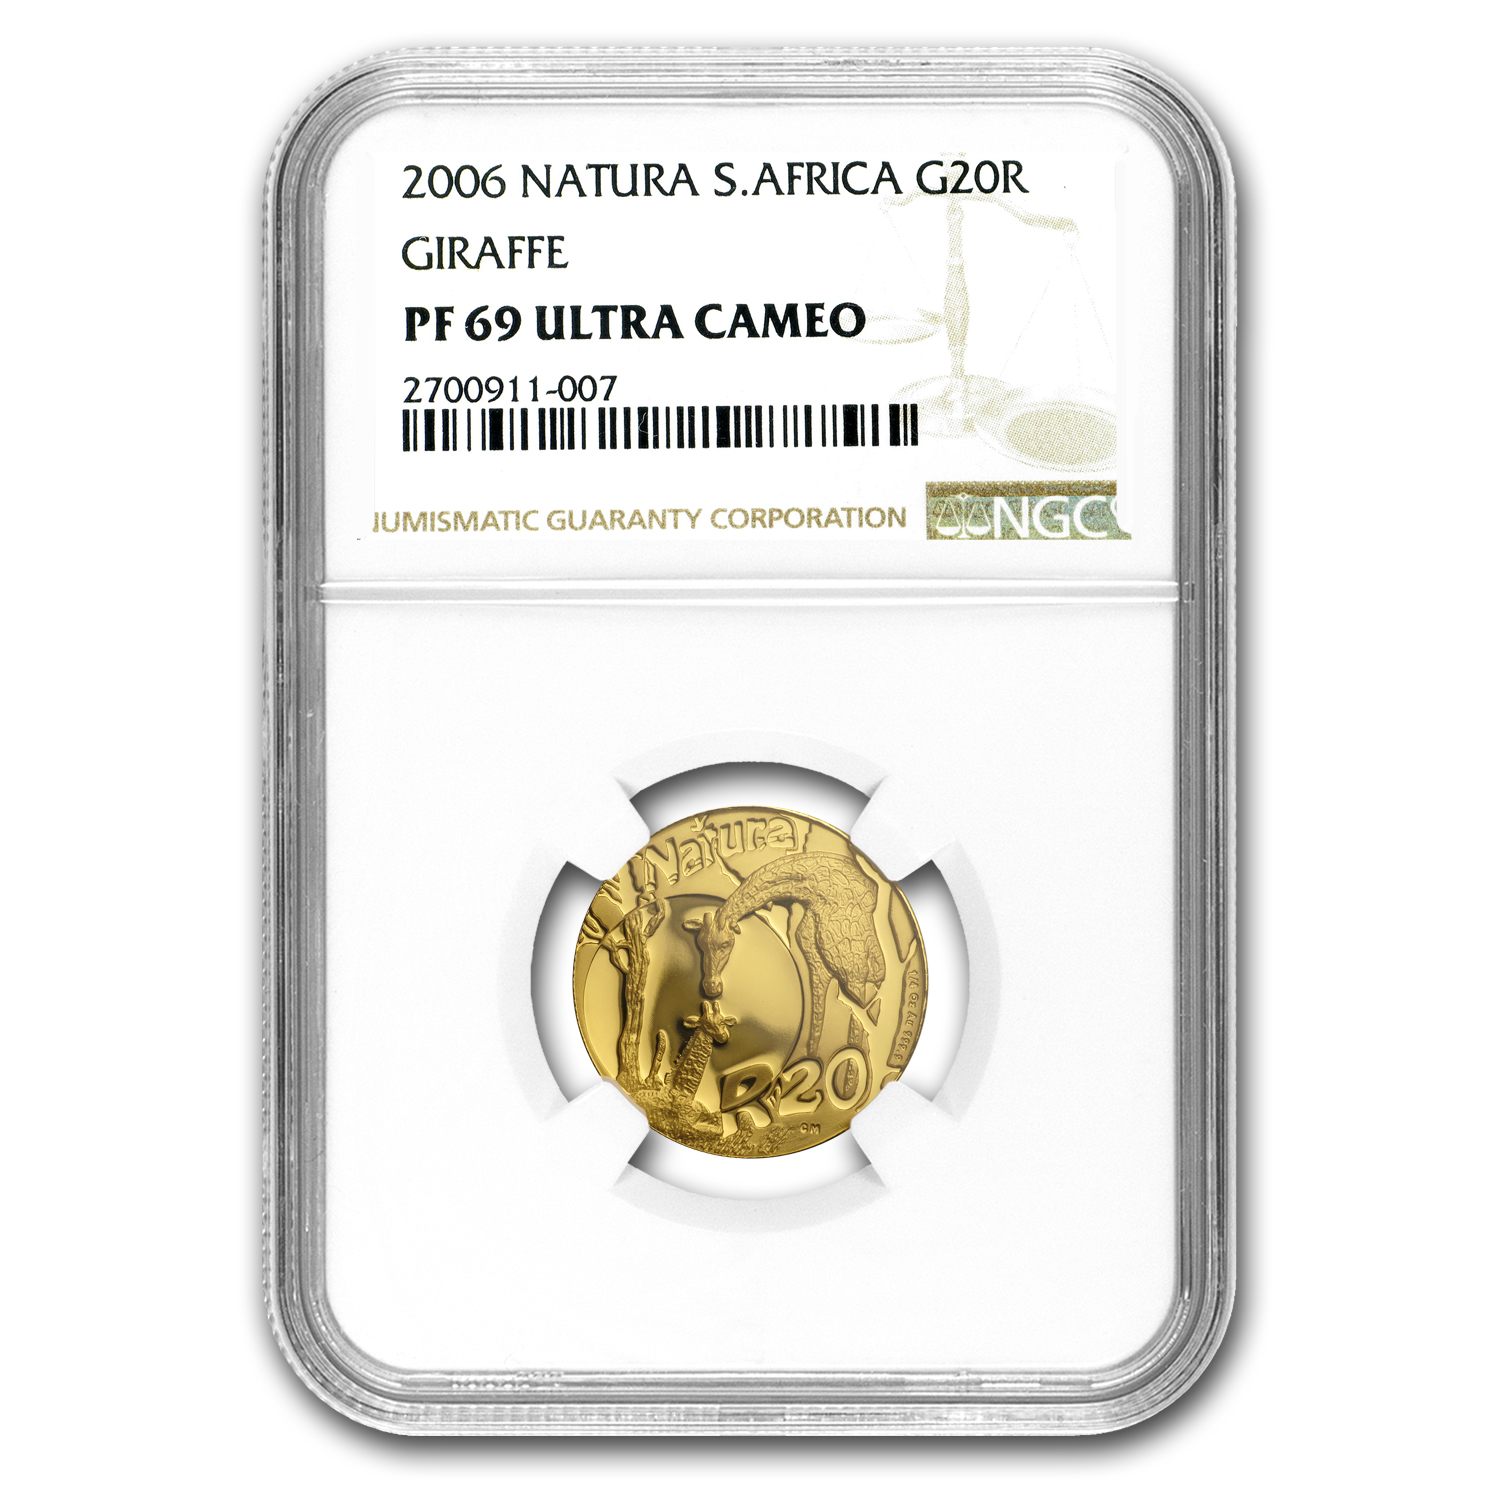 2006 South Africa 1/4 oz Proof Gold Natura Giraffe PF-69 NGC